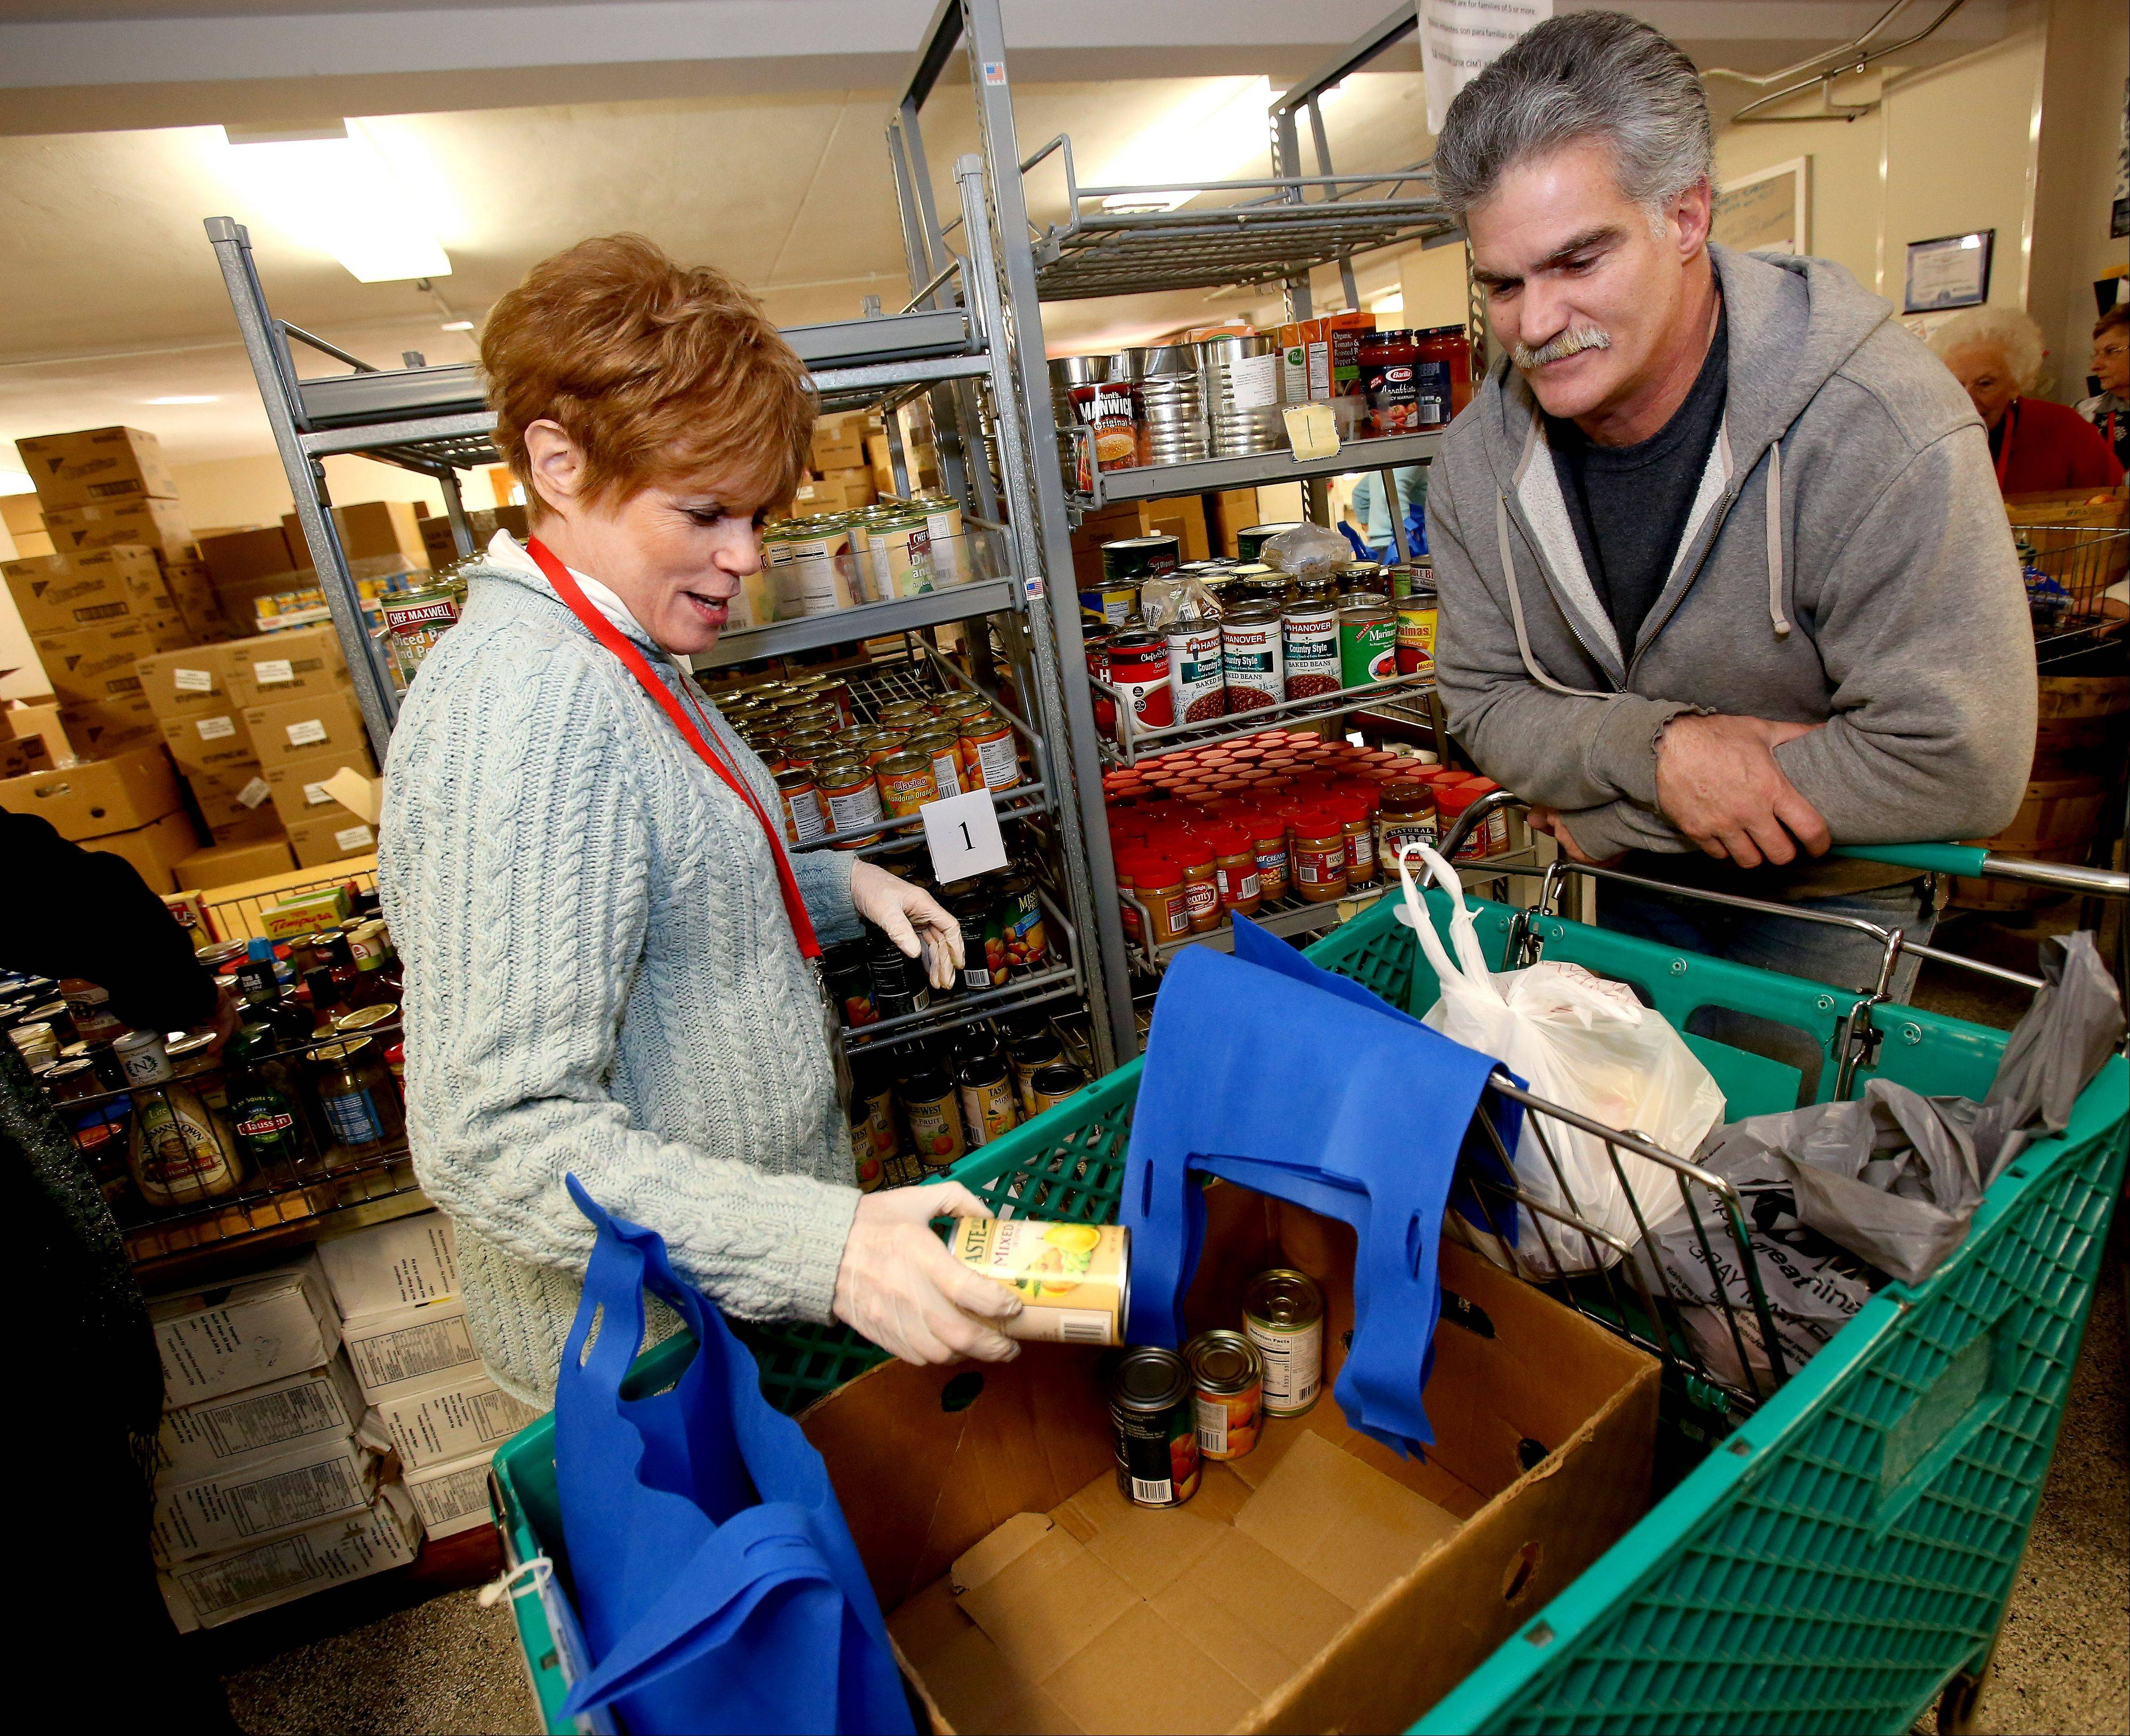 Volunteer Anita Pontious puts some cans in the cart for Richard Hale of Glen Ellyn during his visit to the food pantry at the People's Resource Center in Wheaton Tuesday.